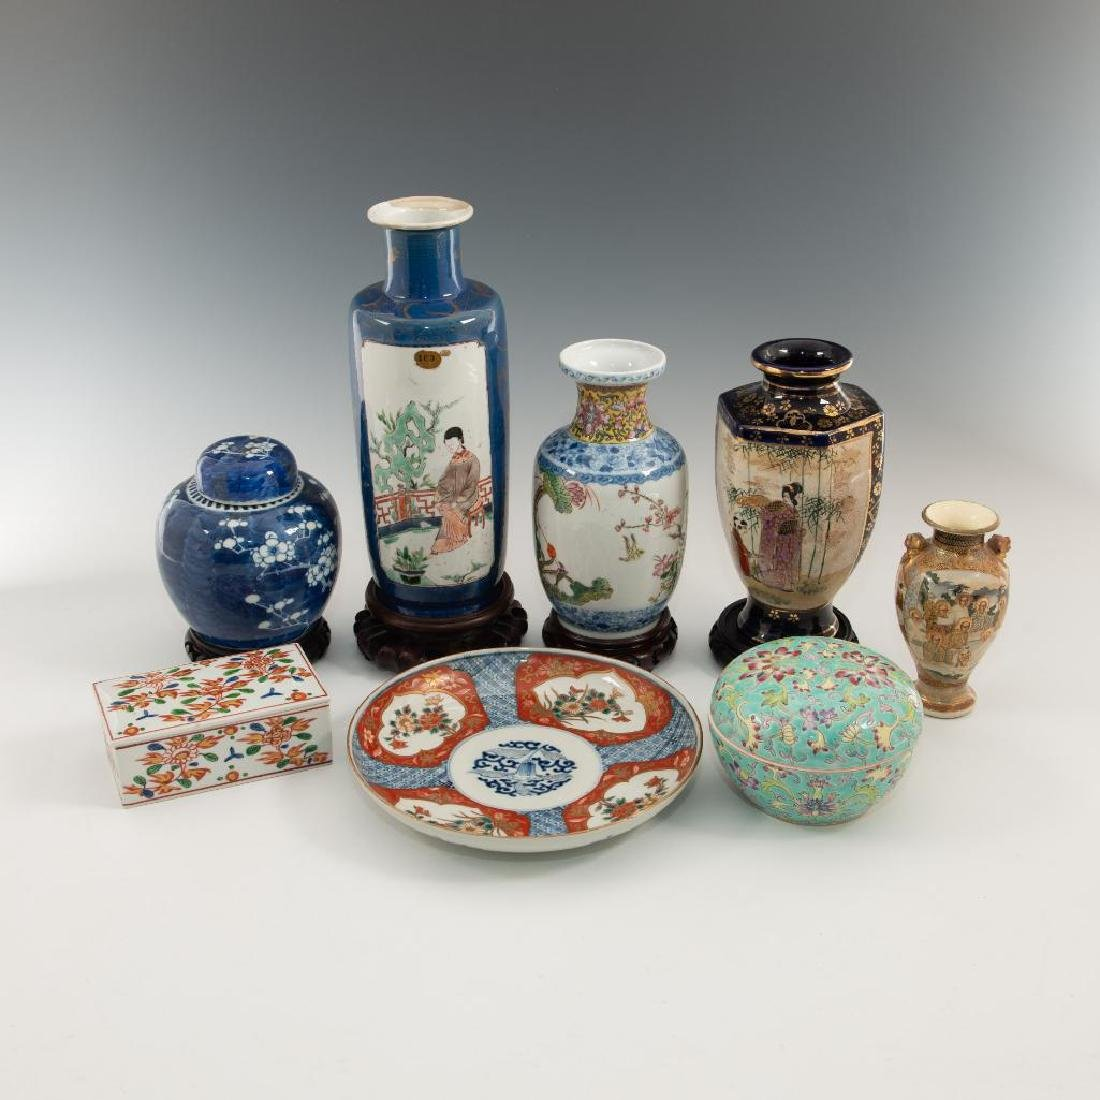 LOT OF 8 ORIENTAL PORCELAIN VASES DISHES AND BOX